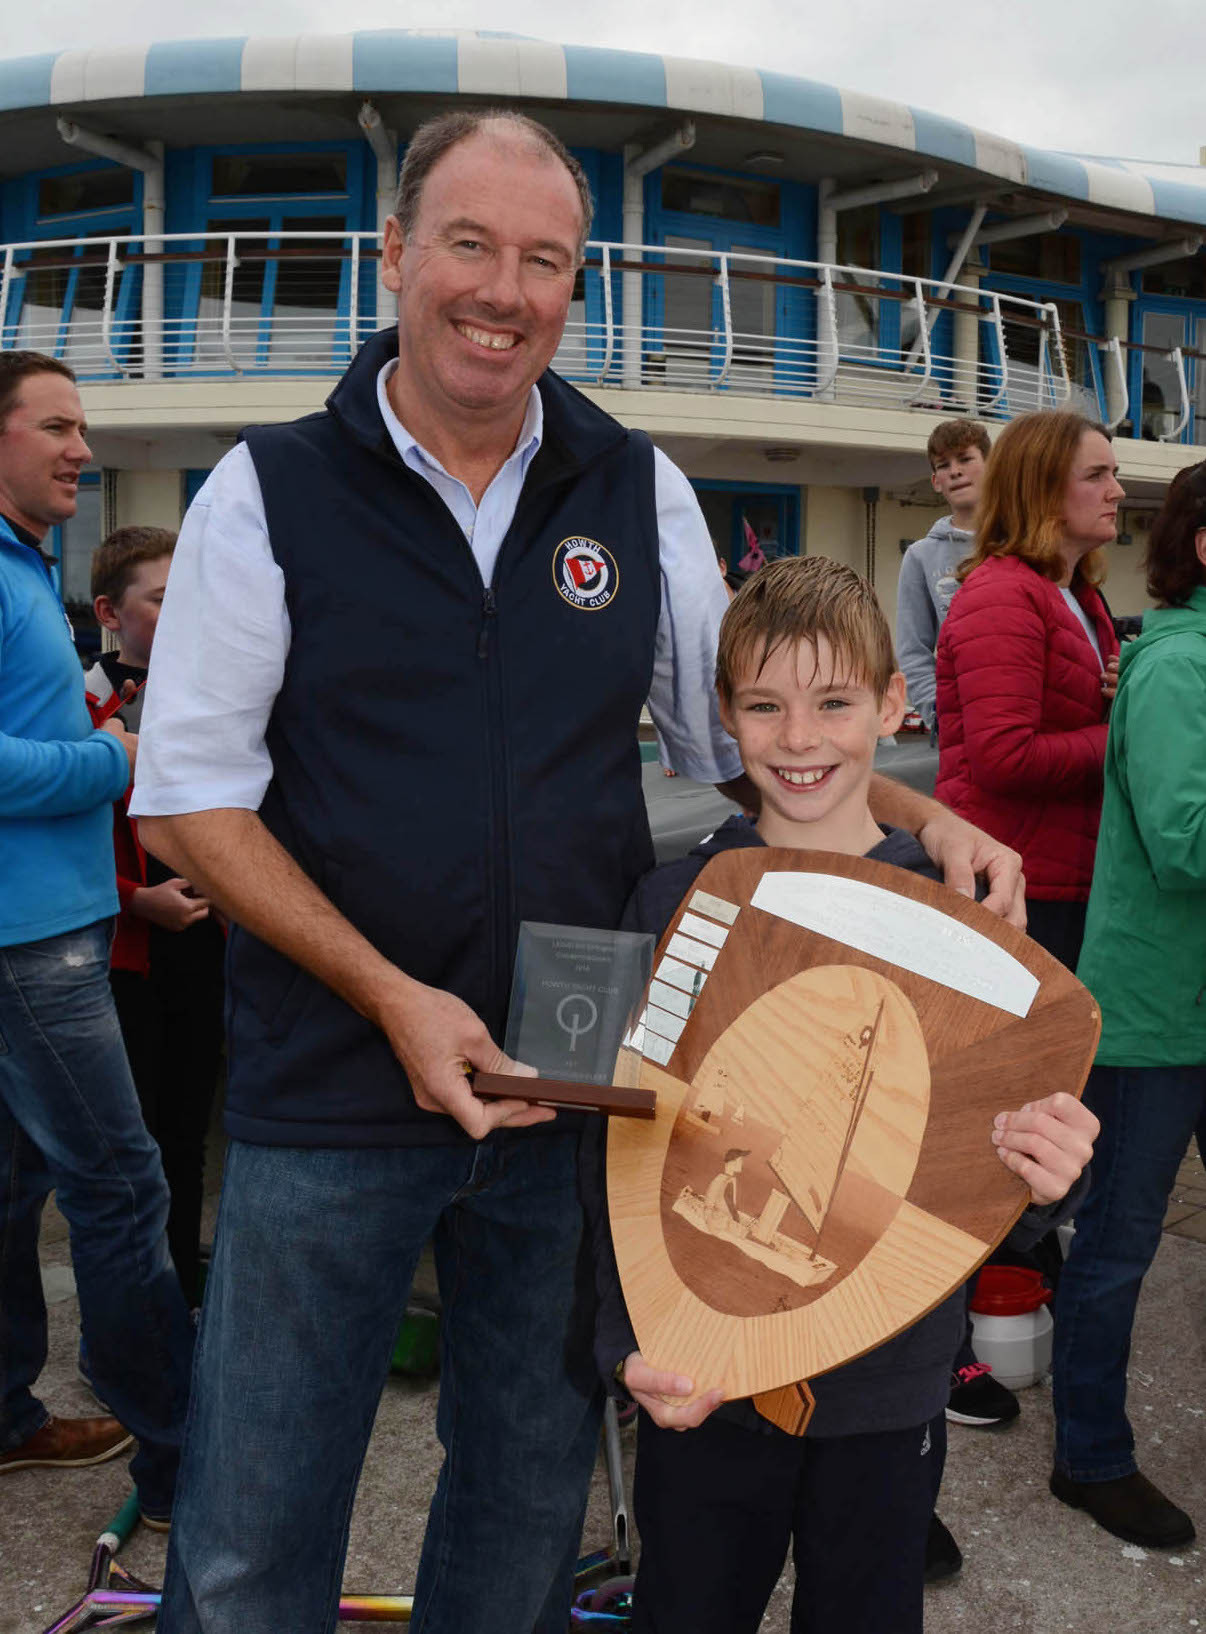 Luke Turvey with the trophy for 1st in Junior Silver Fleet